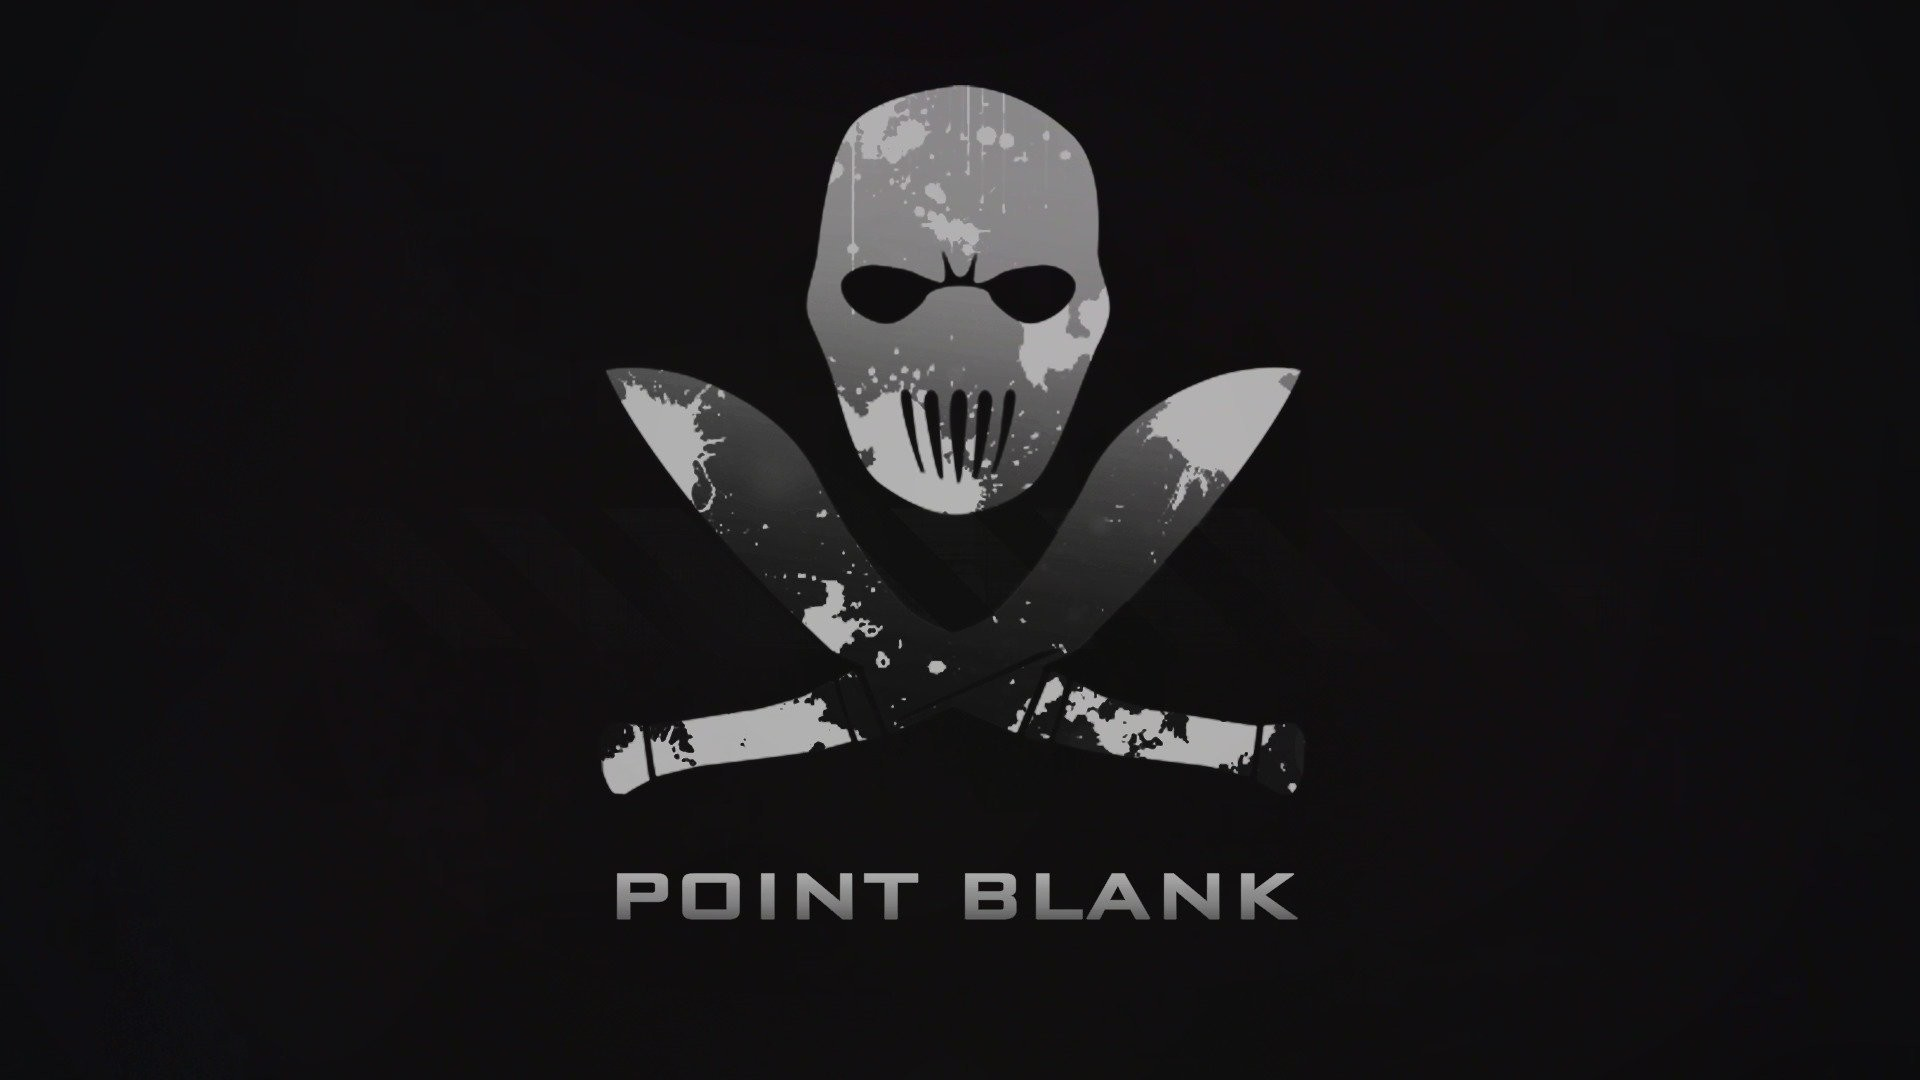 Point Blank Wallpaper 2018 (72+ images)